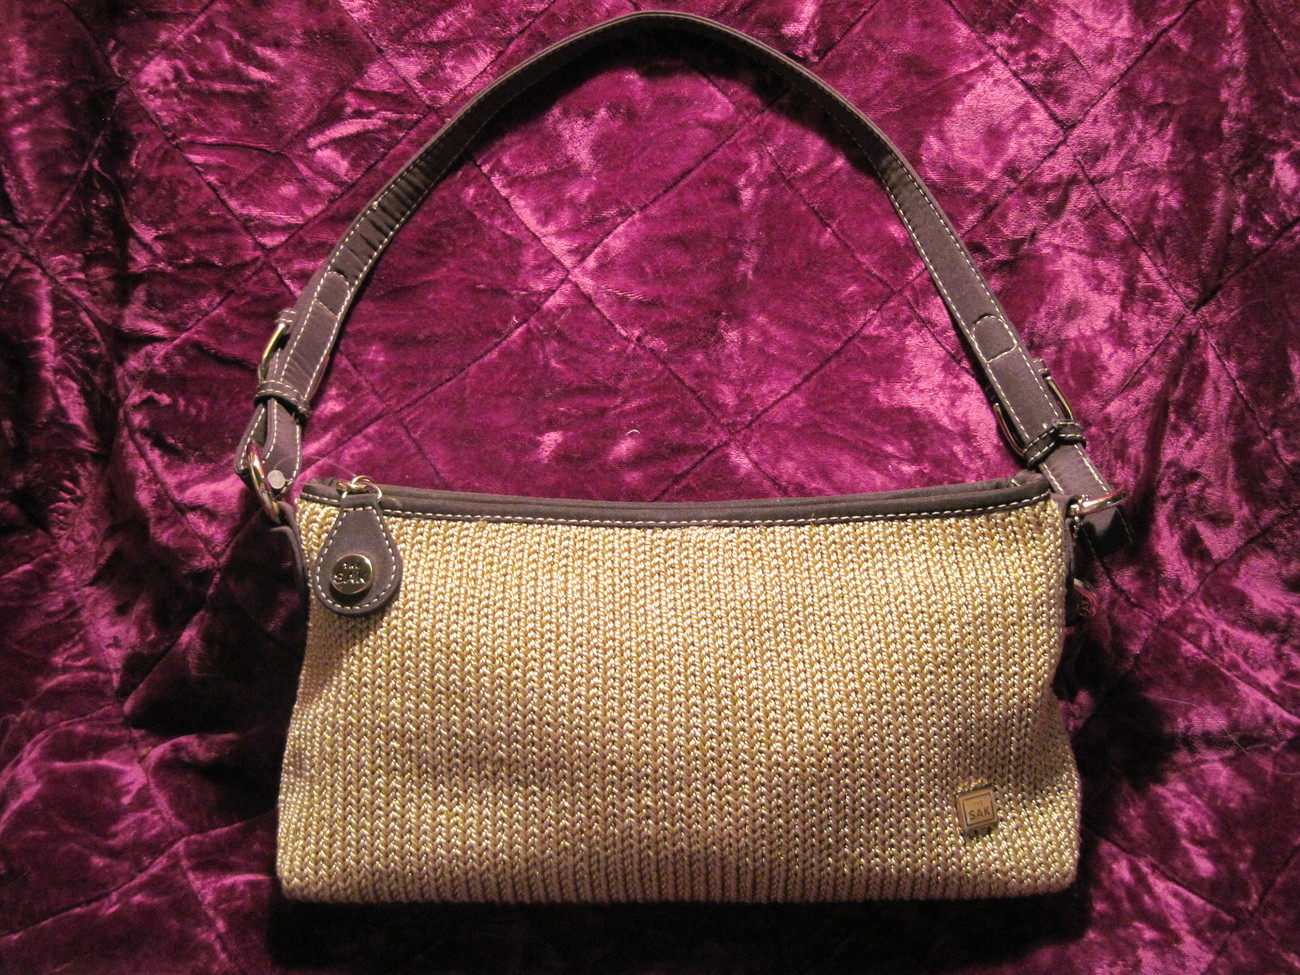 Le Sak Crochet Bags : Designer Leather handbags from The Sak The Sak Artist Circle Bags